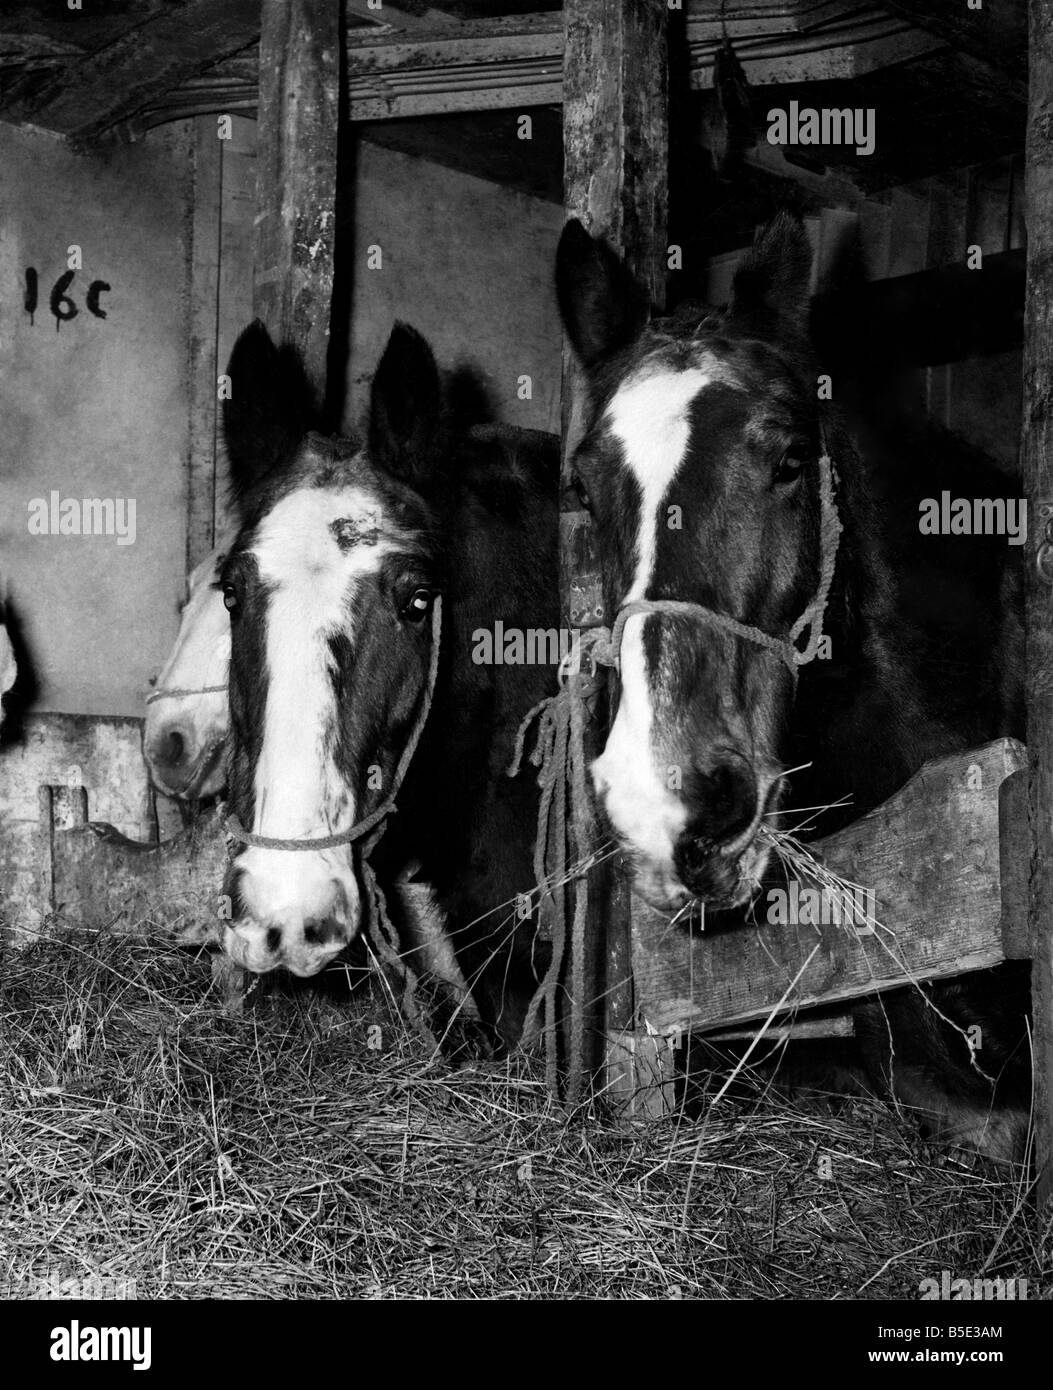 Irish Horse meat feature. Jan. 1960.;Irish Horses seen here waiting to be off loaded from the ship Thearon at Amsterdam. - Stock Image